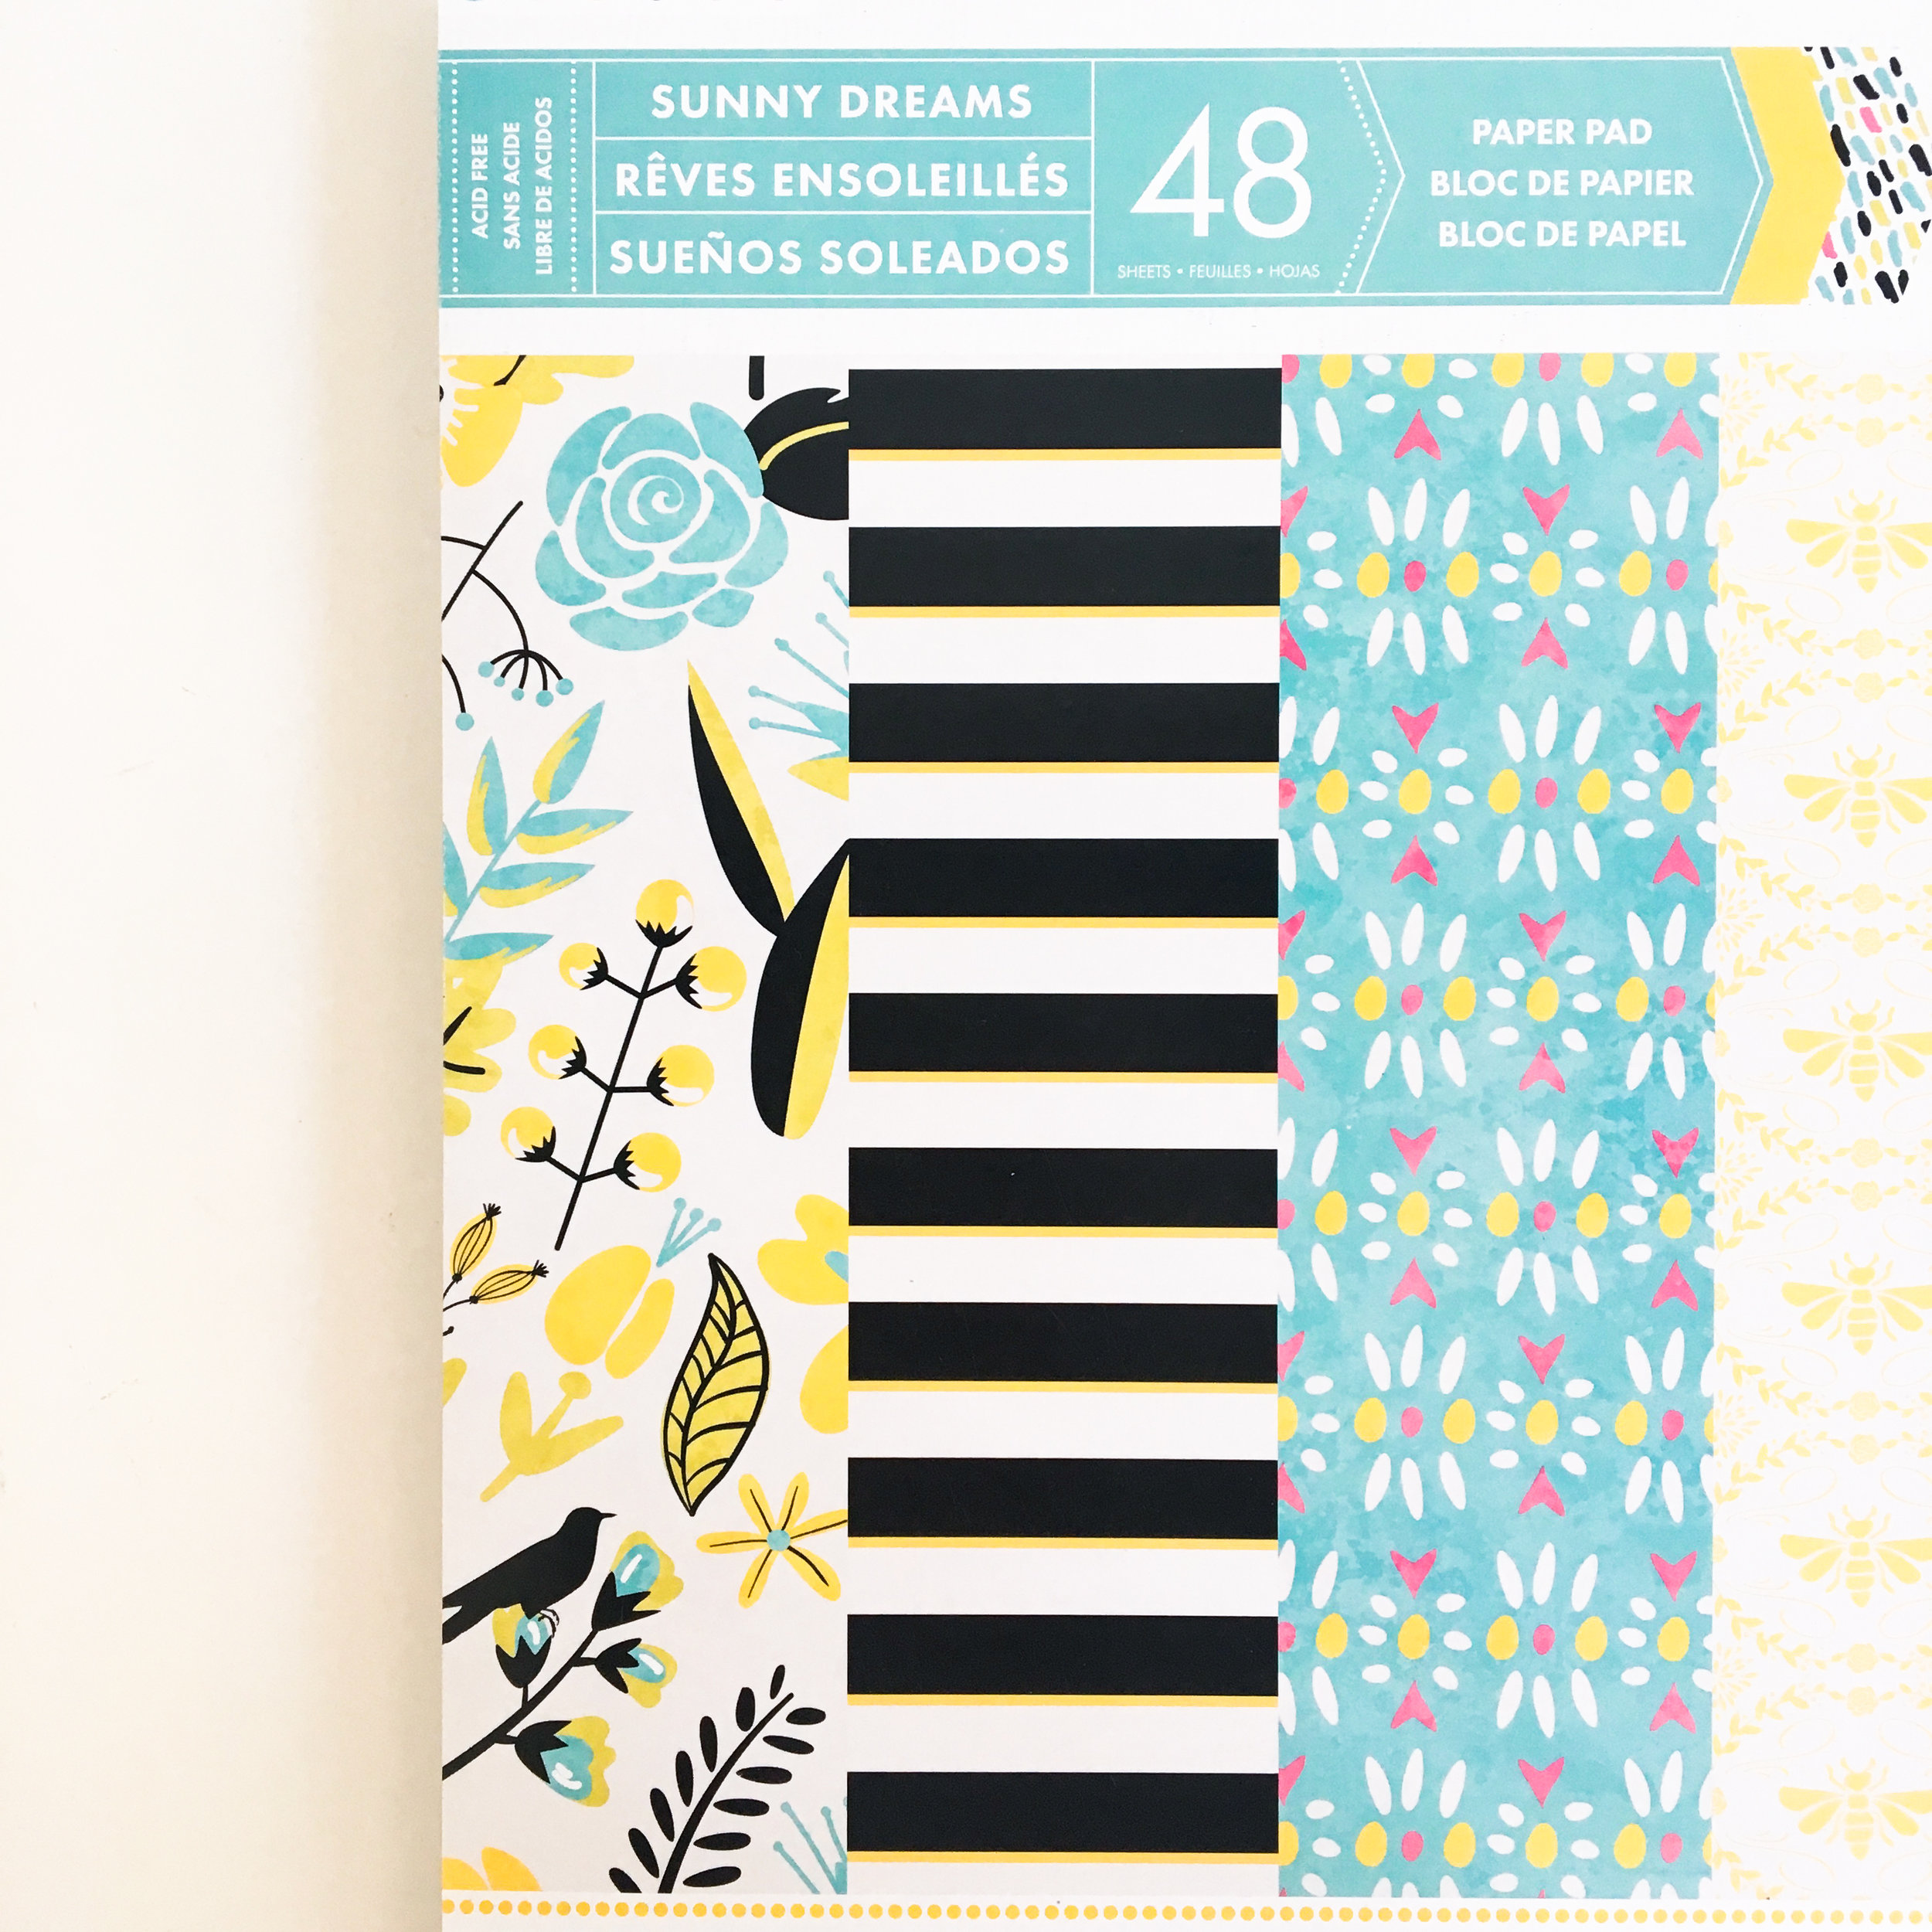 This is the Sunny Dreams paper pad we used to make the book covers and pencil pouches.